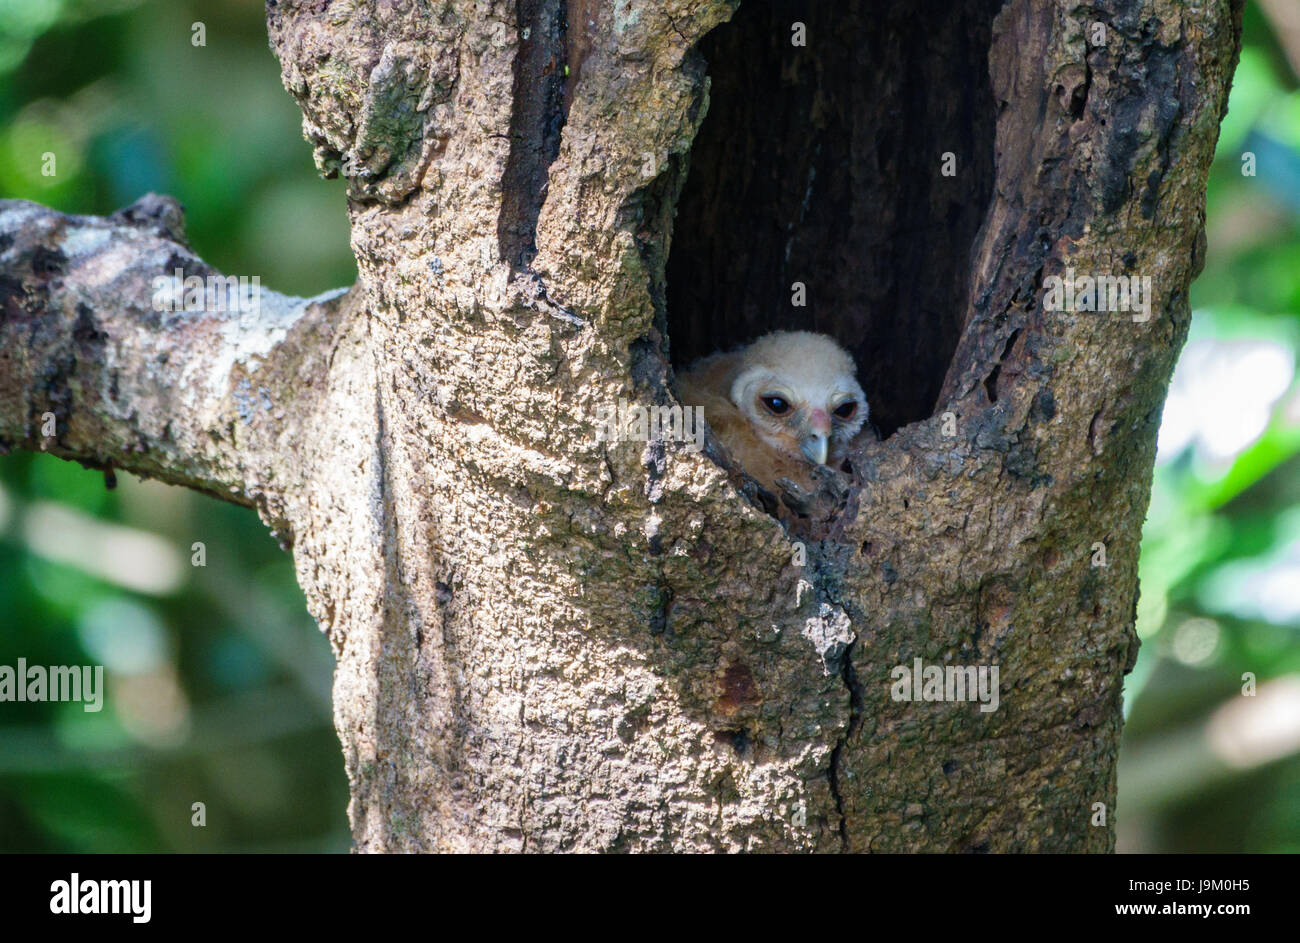 Bird spotted chick owl inside nest in tree hole Stock Photo